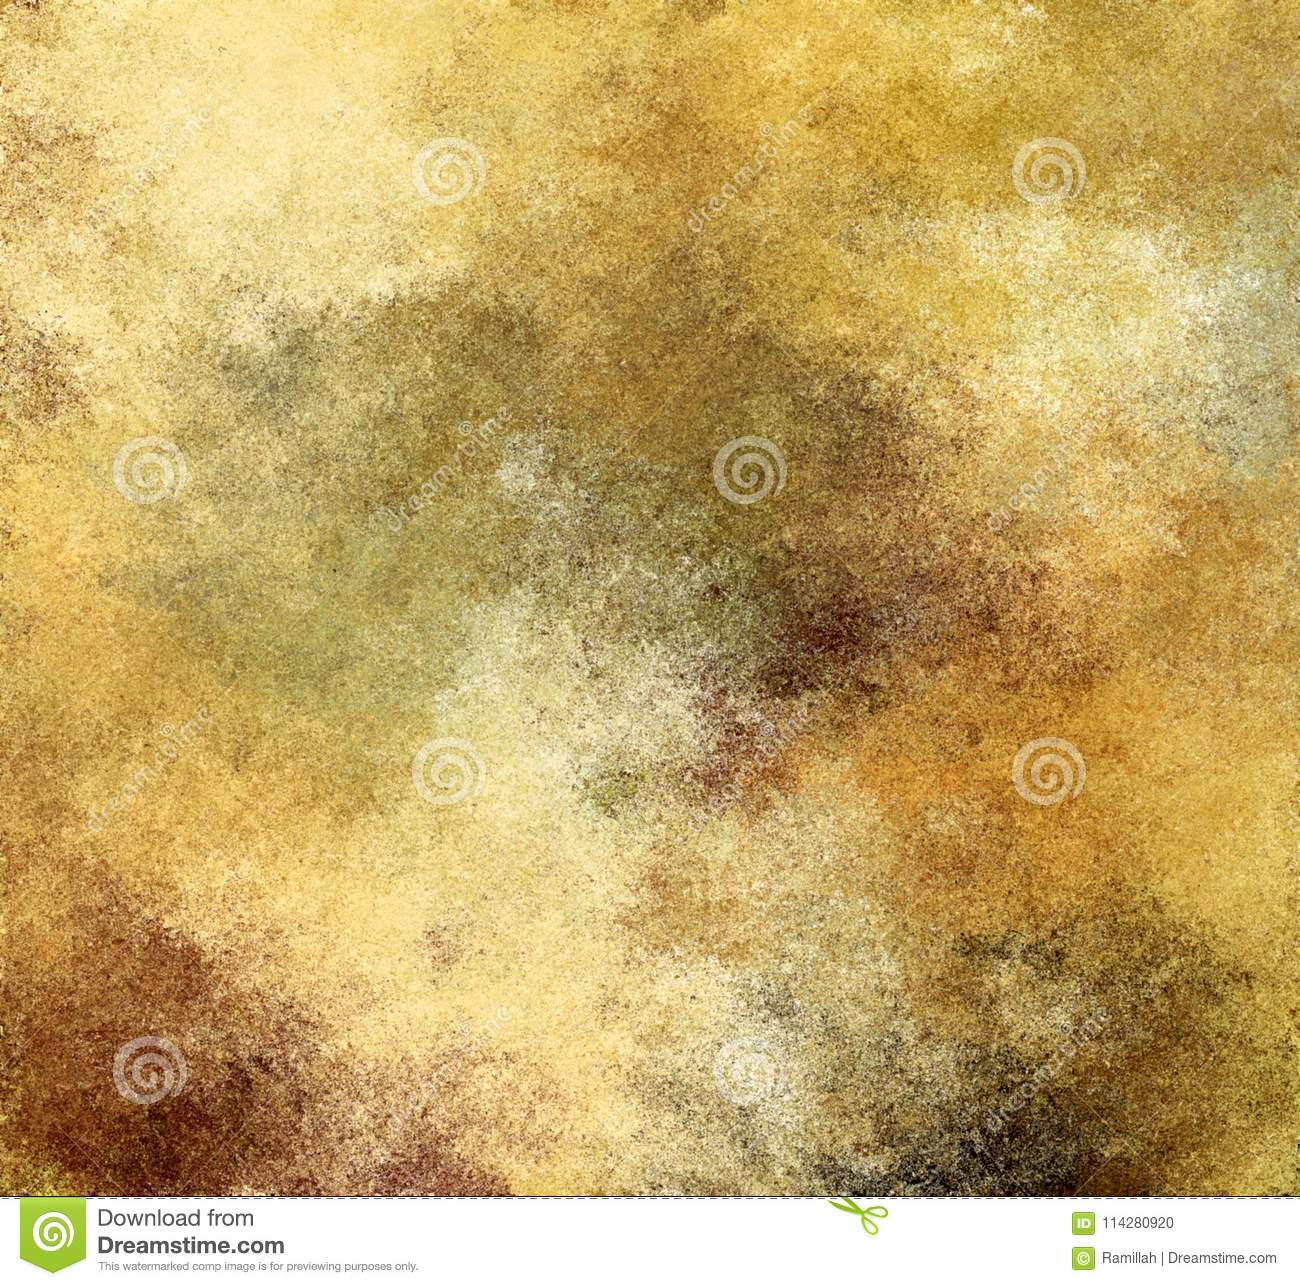 Digital Painting Abstract Old Rustic Yellow Paper Background